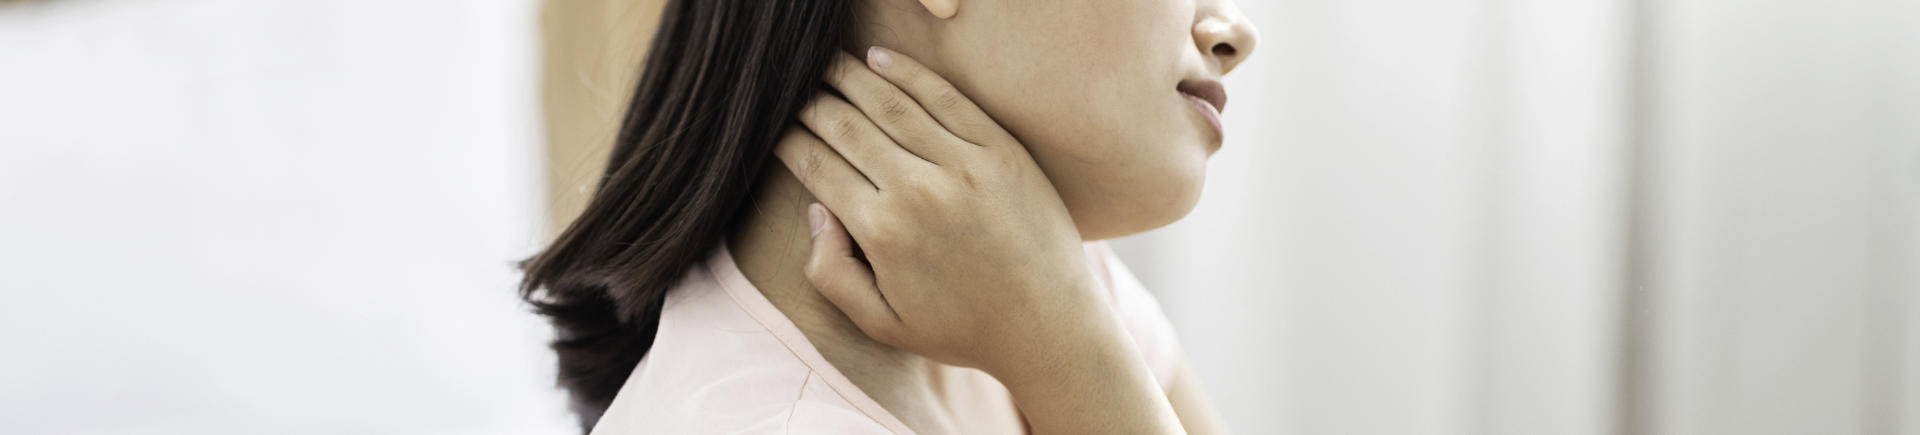 Asian woman suffering from neck pain